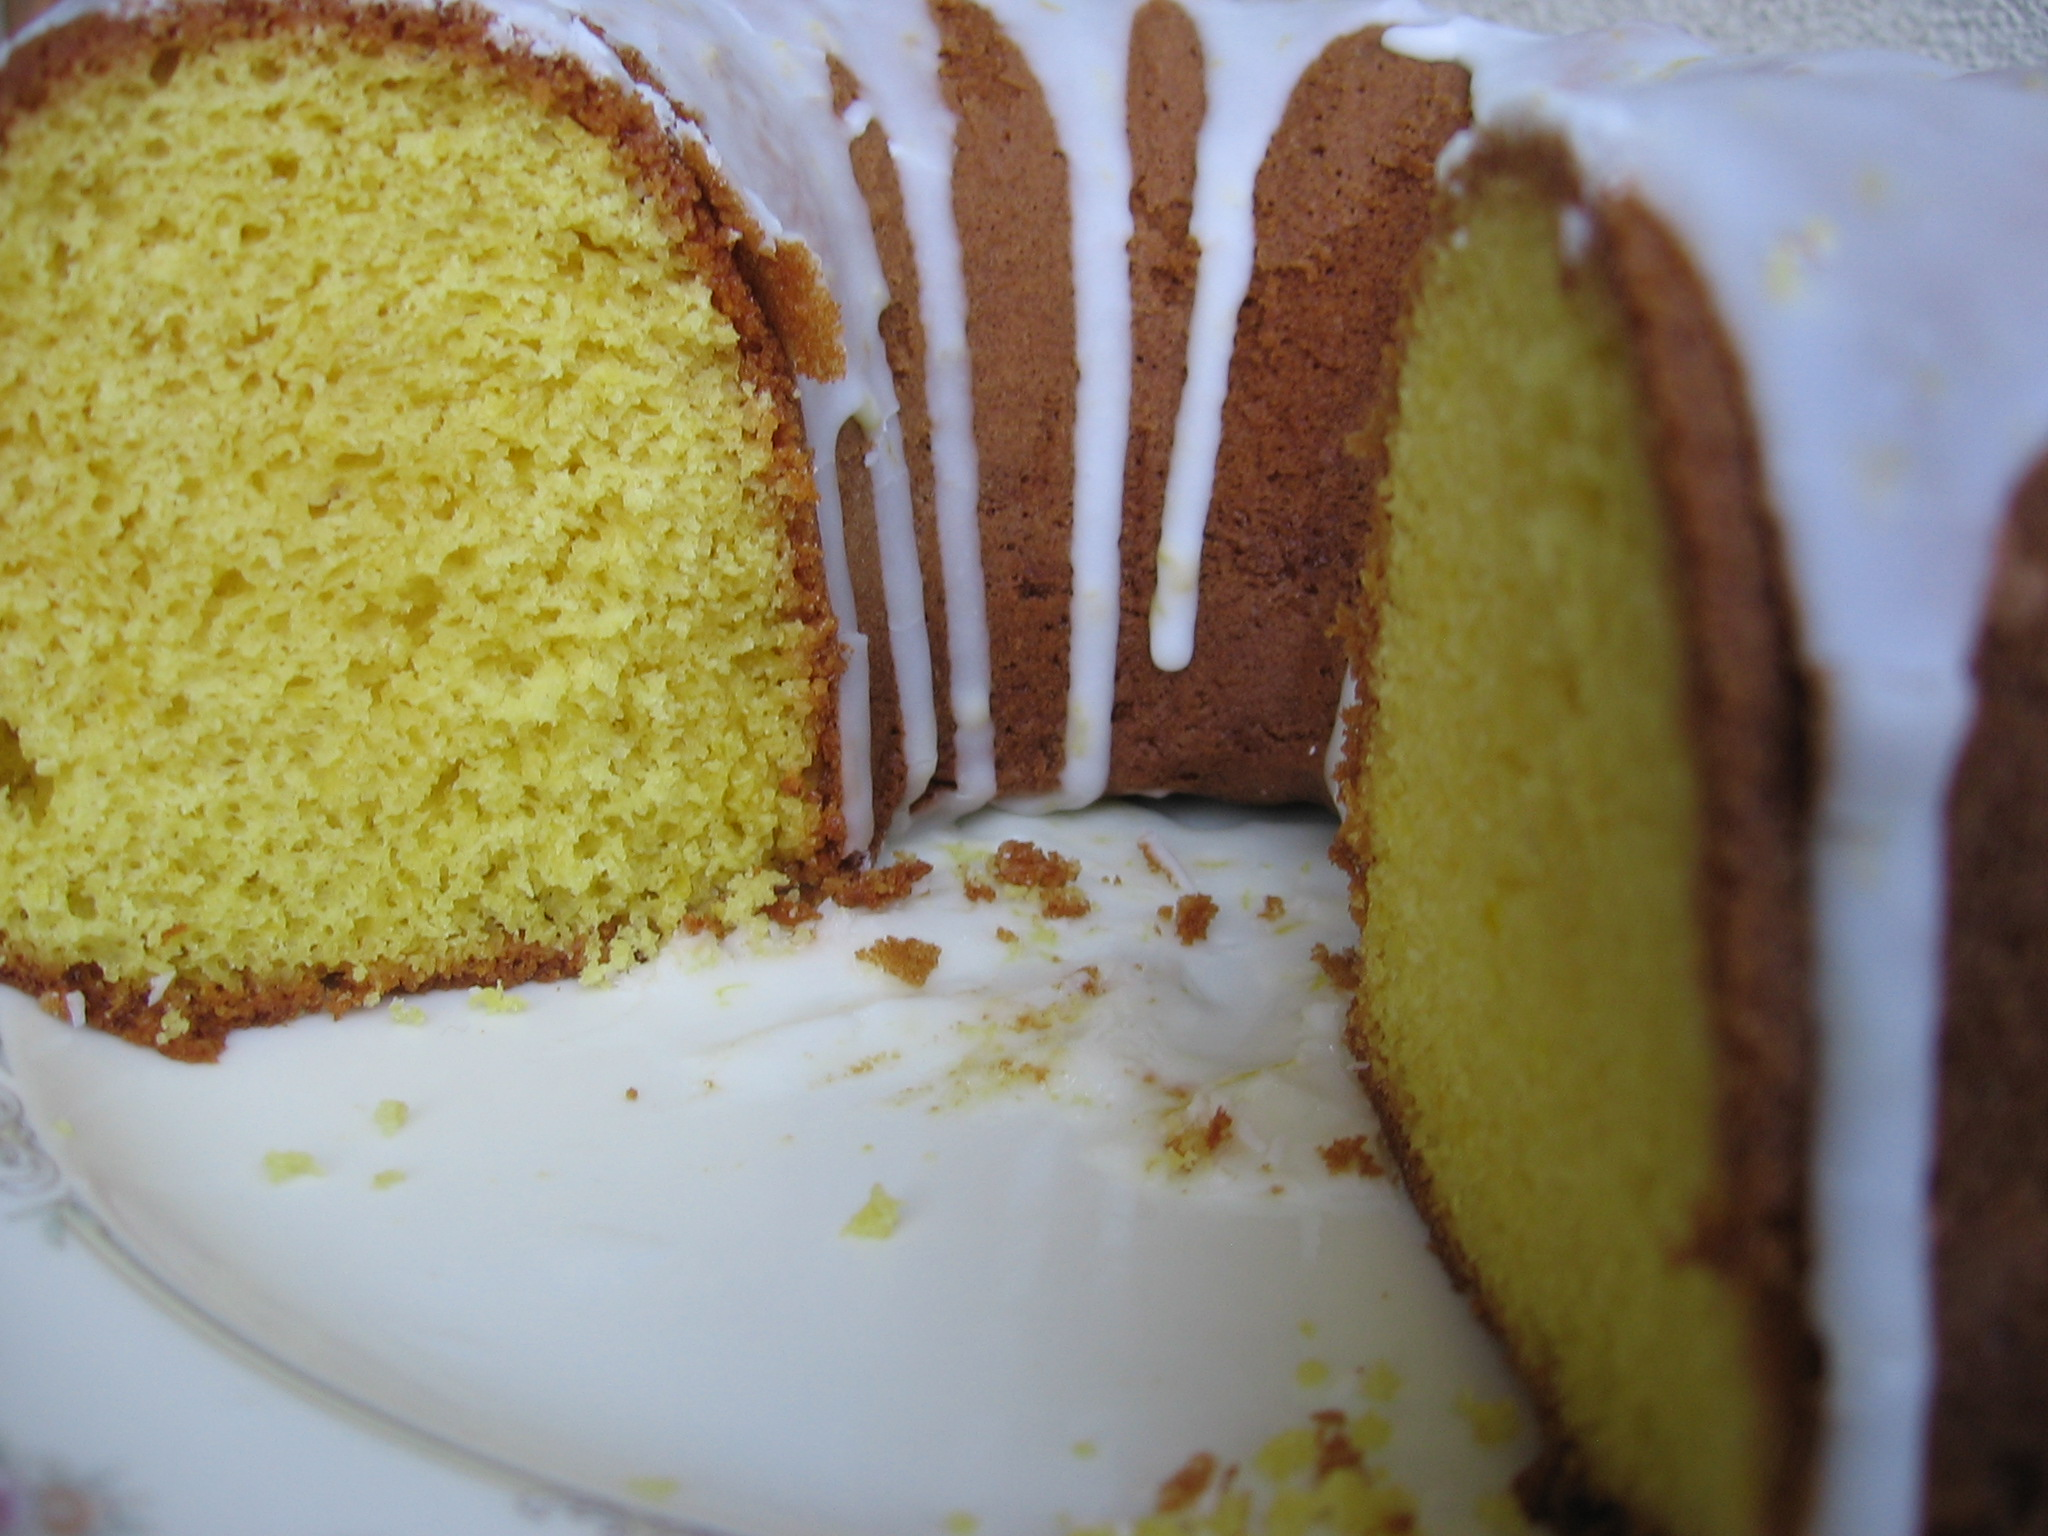 Lemon Supreme Pound Cake With Simple Lemon Icing Glaze Recipe